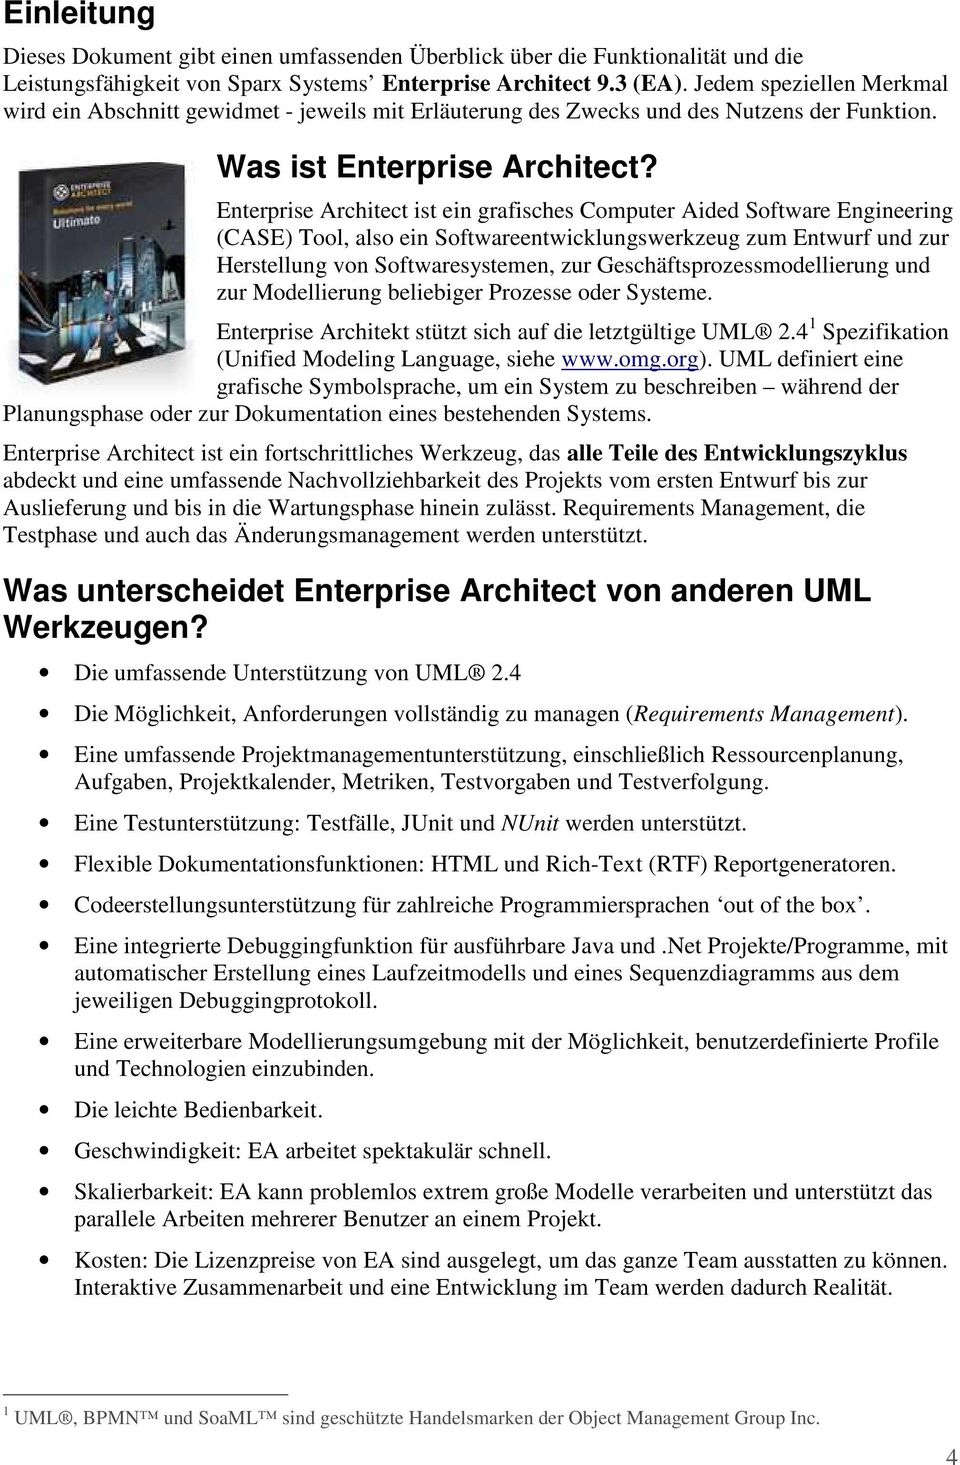 Enterprise Architect ist ein grafisches Computer Aided Software Engineering (CASE) Tool, also ein Softwareentwicklungswerkzeug zum Entwurf und zur Herstellung von Softwaresystemen, zur